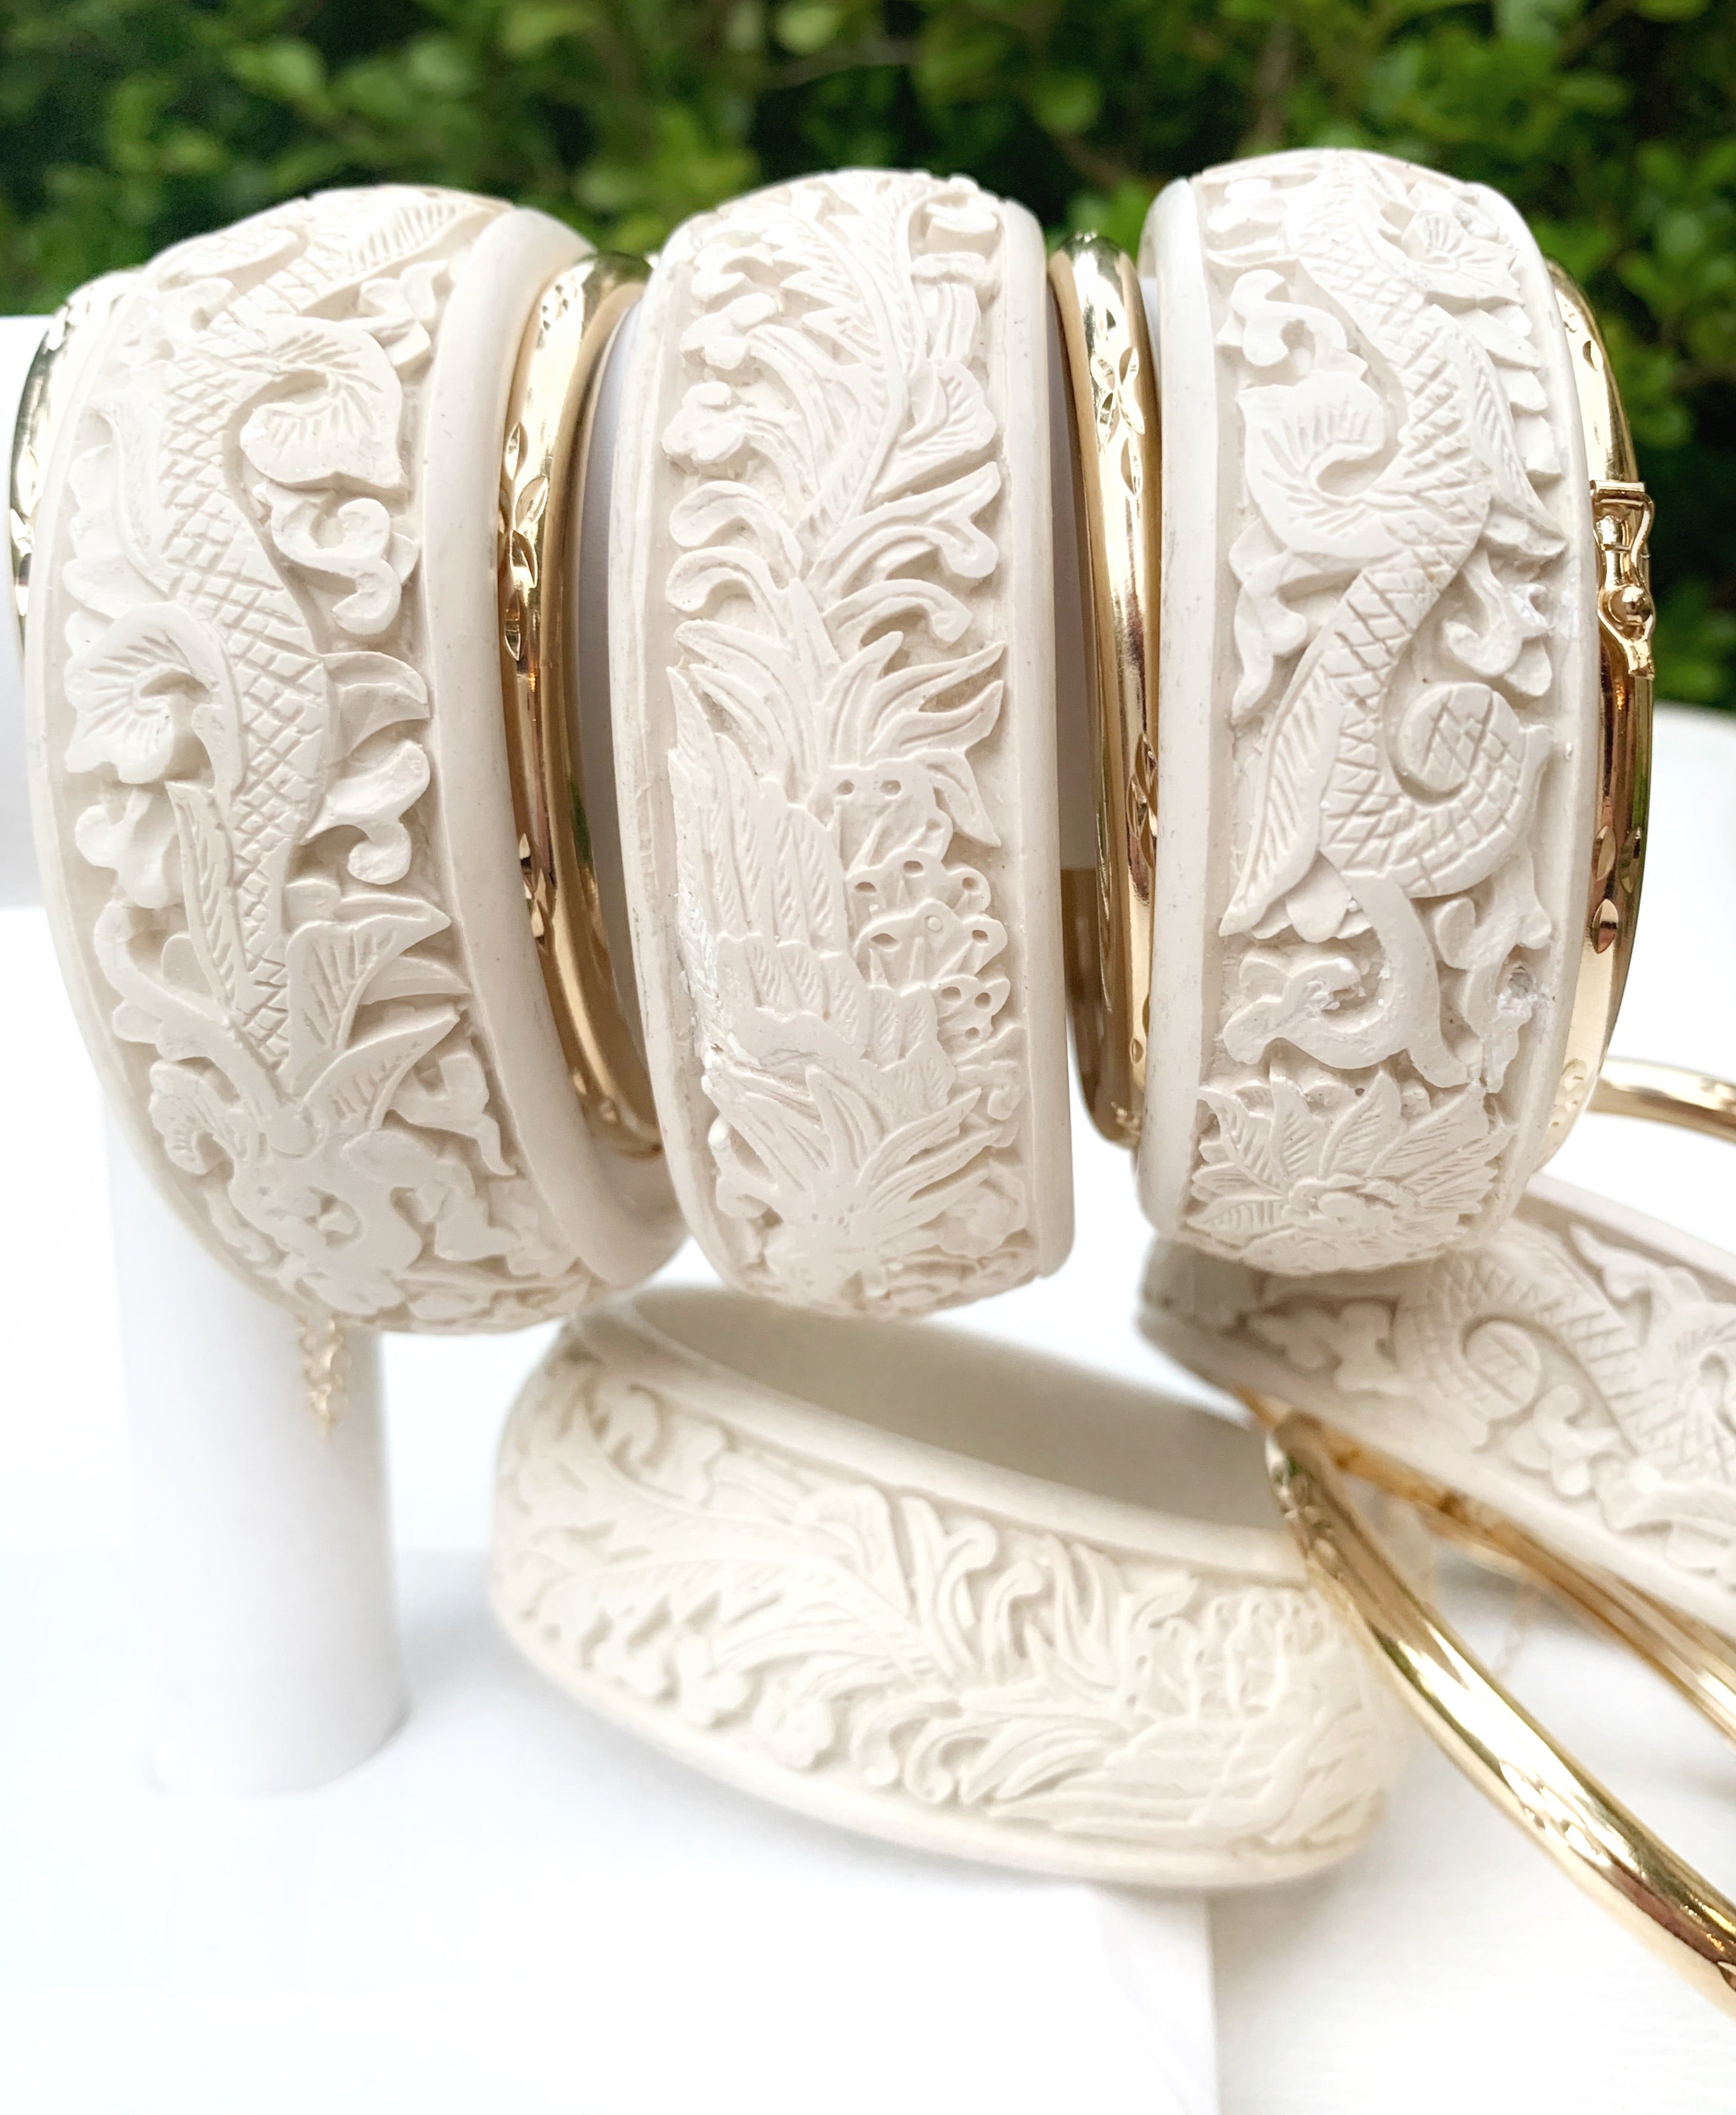 Cinnabar Bangle Bracelet - Cream